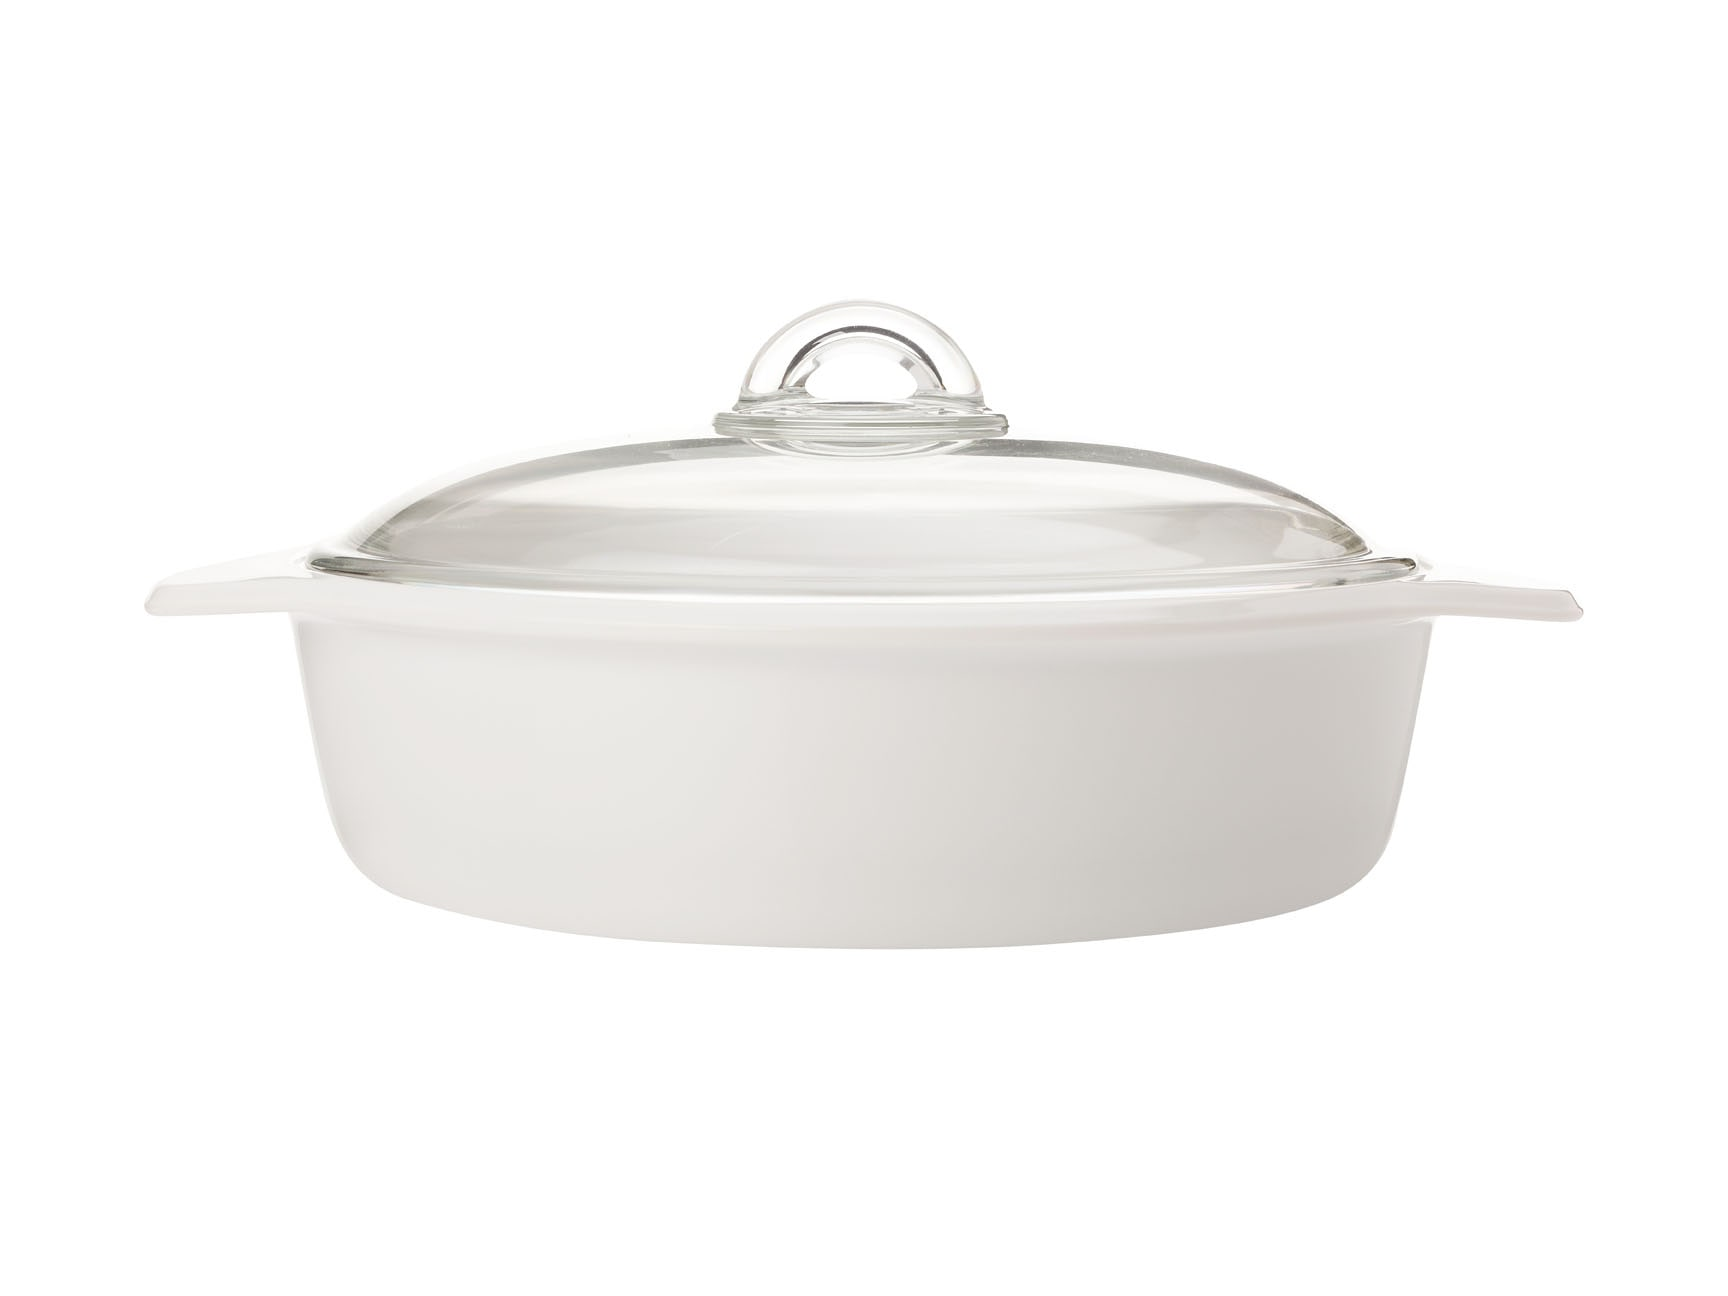 Maxwell & Williams Vitromax 2.5 Litre Round Casserole White